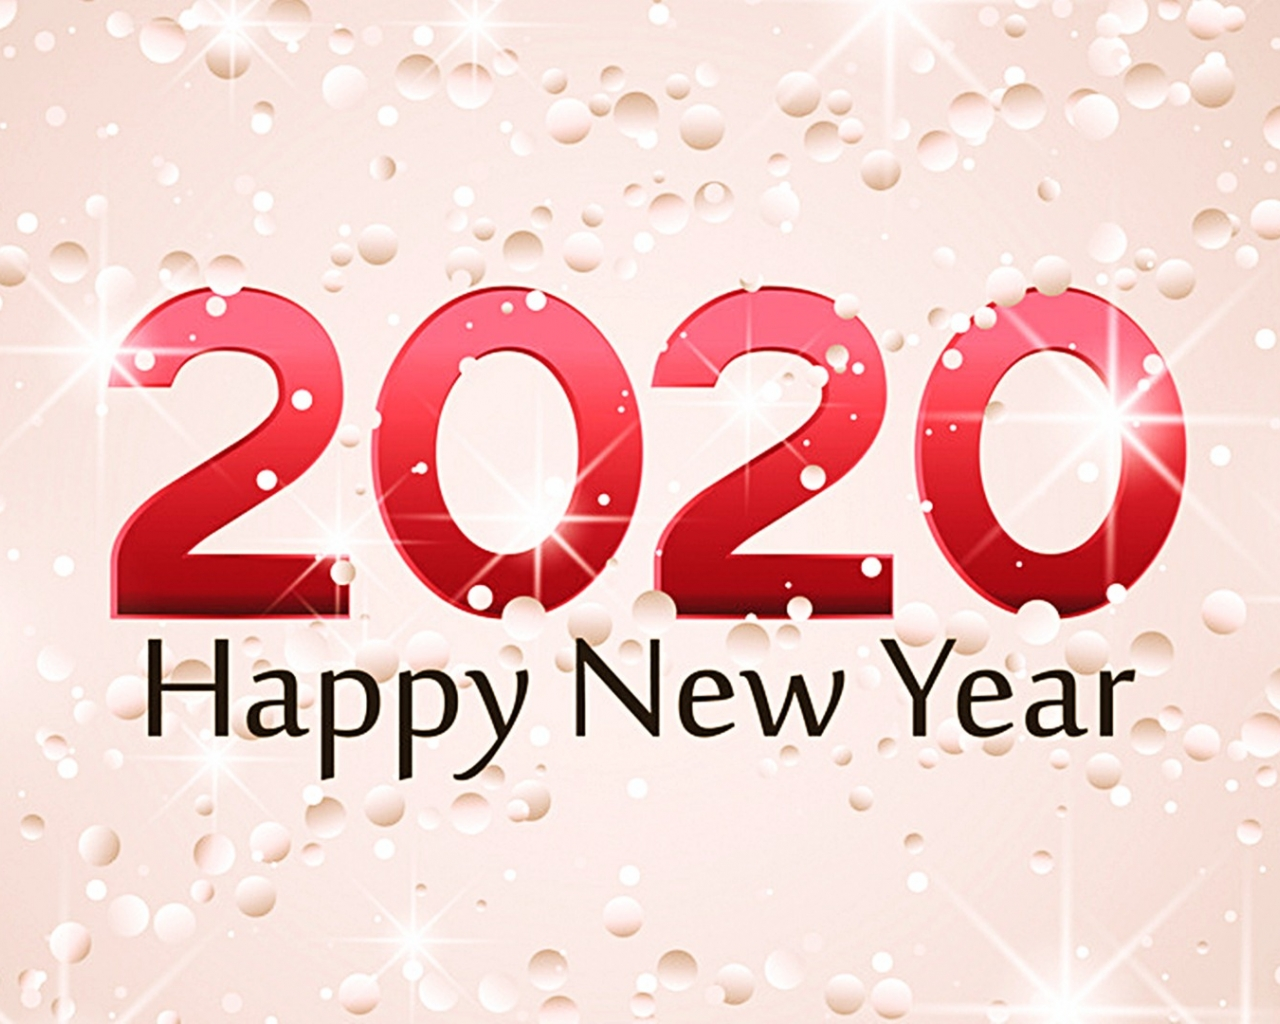 download Happy New Year 2020 Wallpaper HD 45554 Baltana 1280x1024